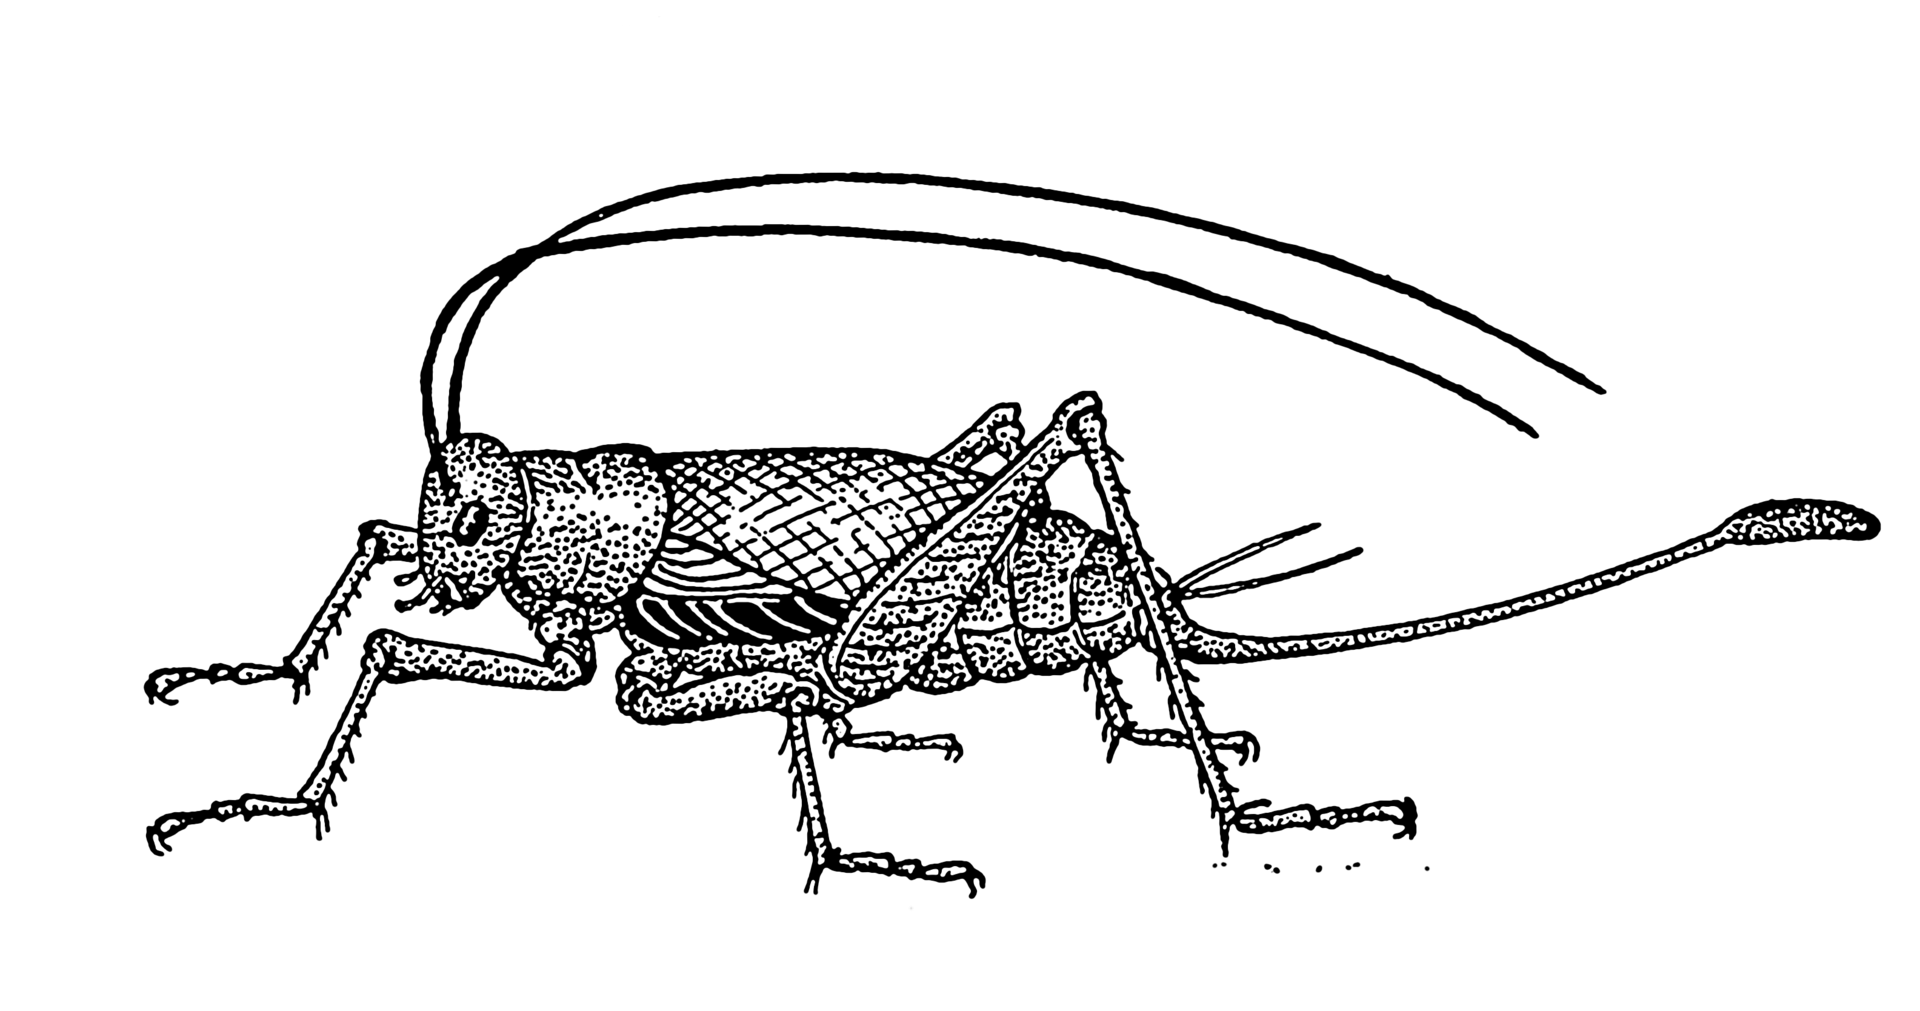 Insect Science Investigations for Kids: Grasshoppers and Crickets ...